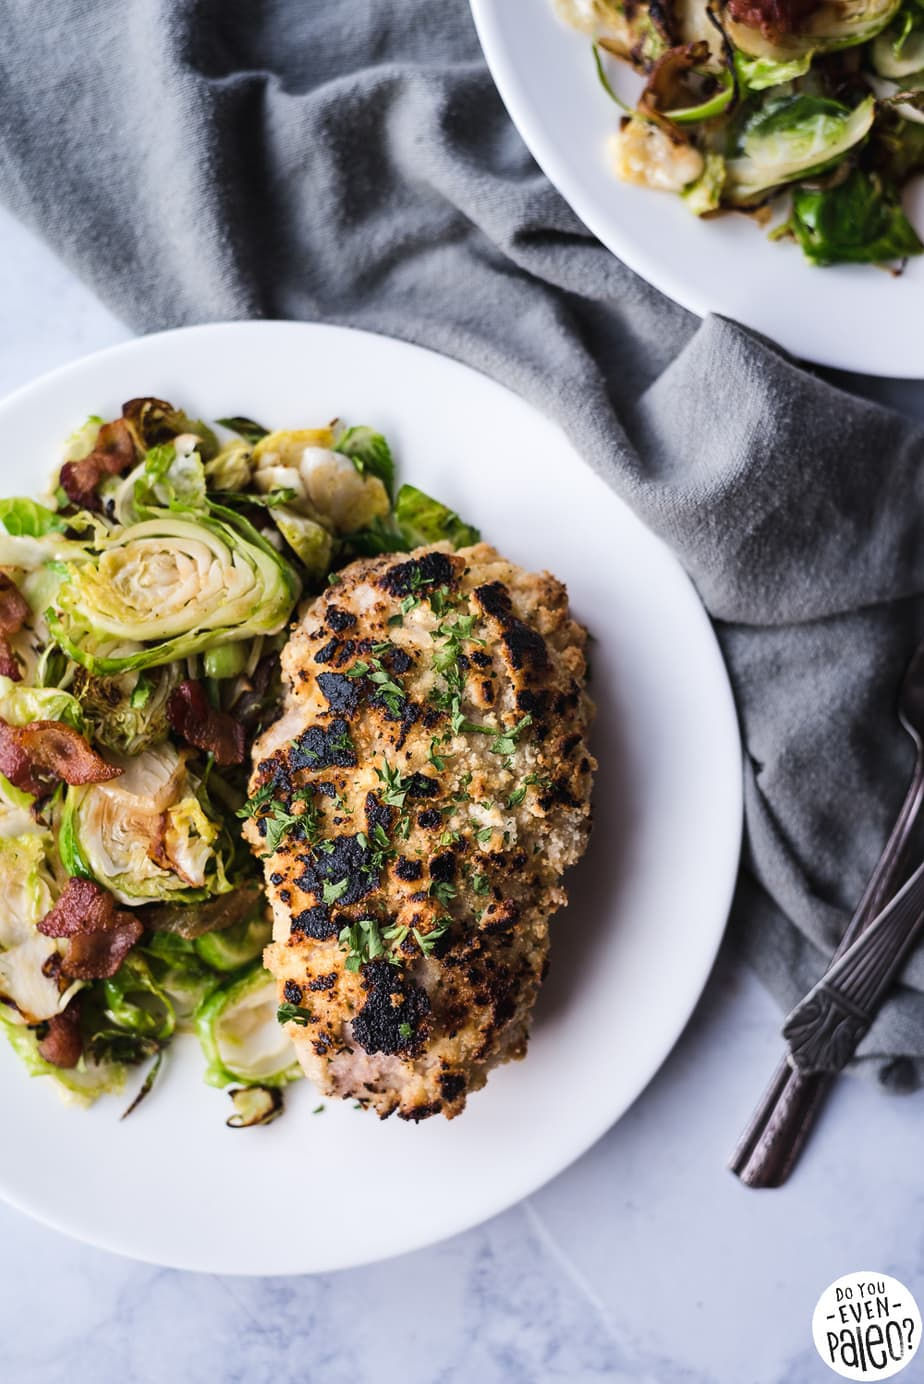 Macadamia-Crusted Pork Chops with Bacon Brussels Sprouts Recipe | DoYouEvenPaleo.net